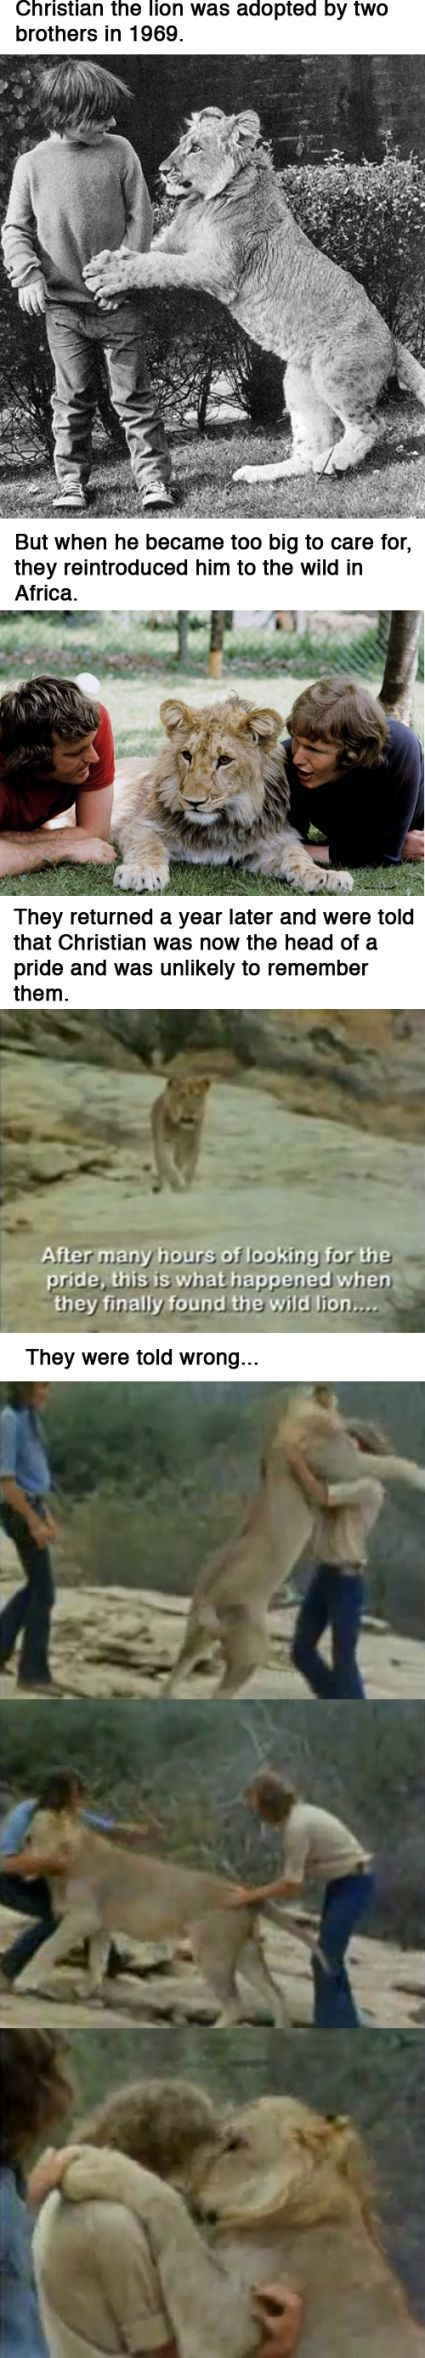 Lovely story about an adopted and released lion